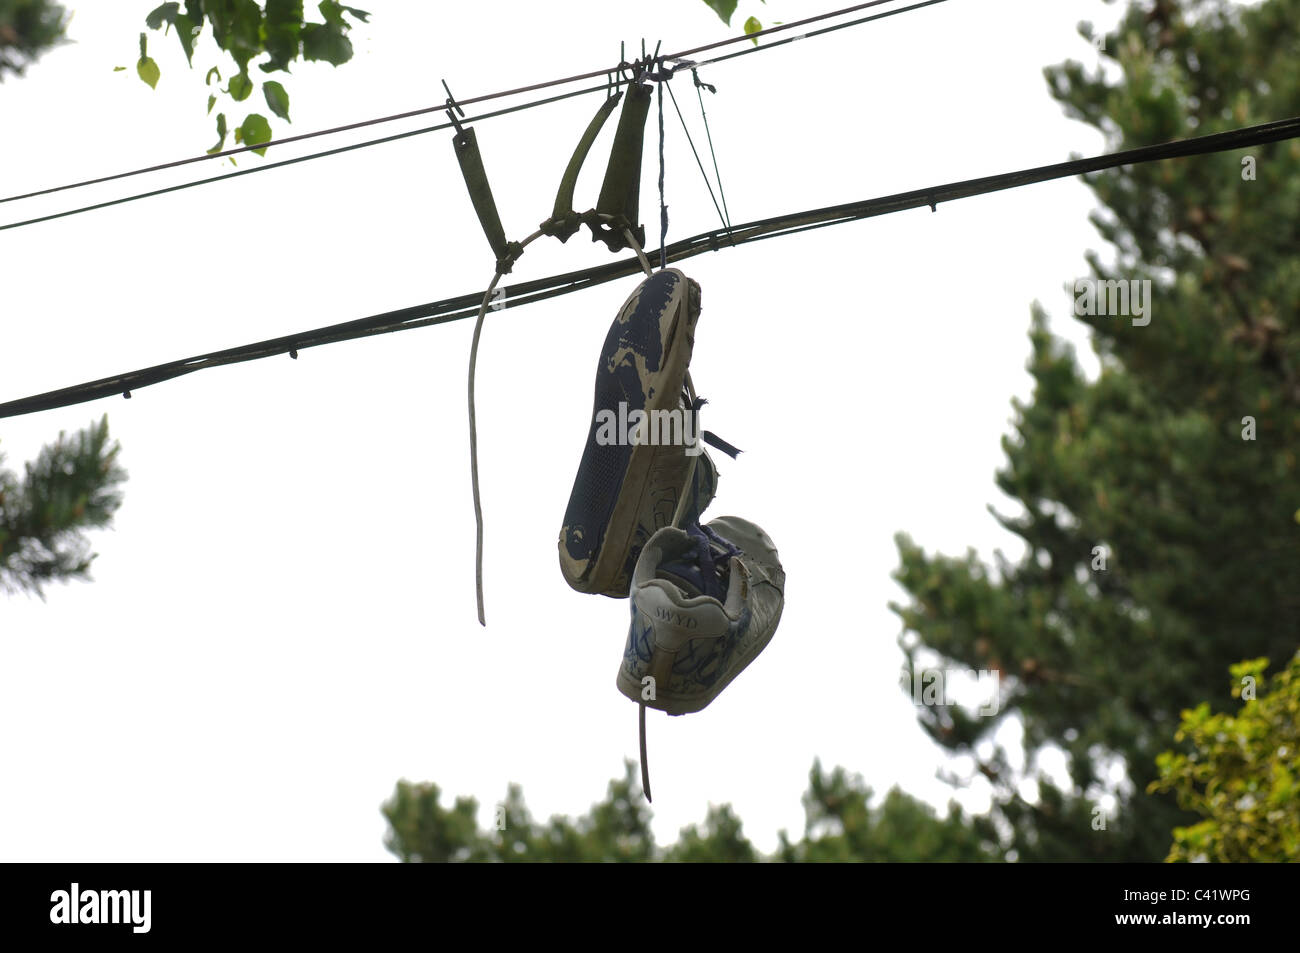 Shoes Hanging From Wires Stock Photos & Shoes Hanging From Wires ...